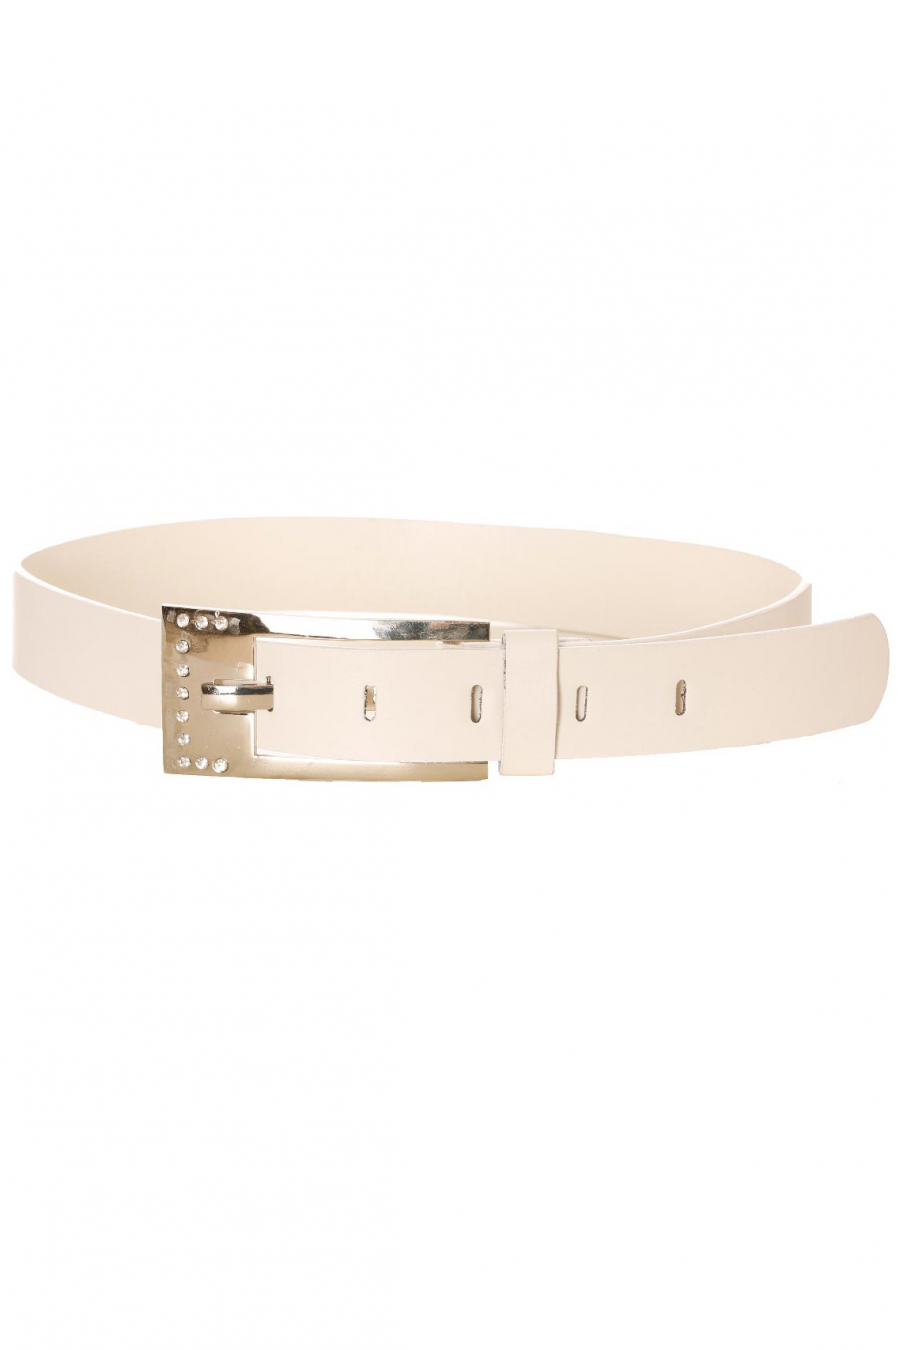 Ceinture blanc, boucle rectangle à strass. BG-0237